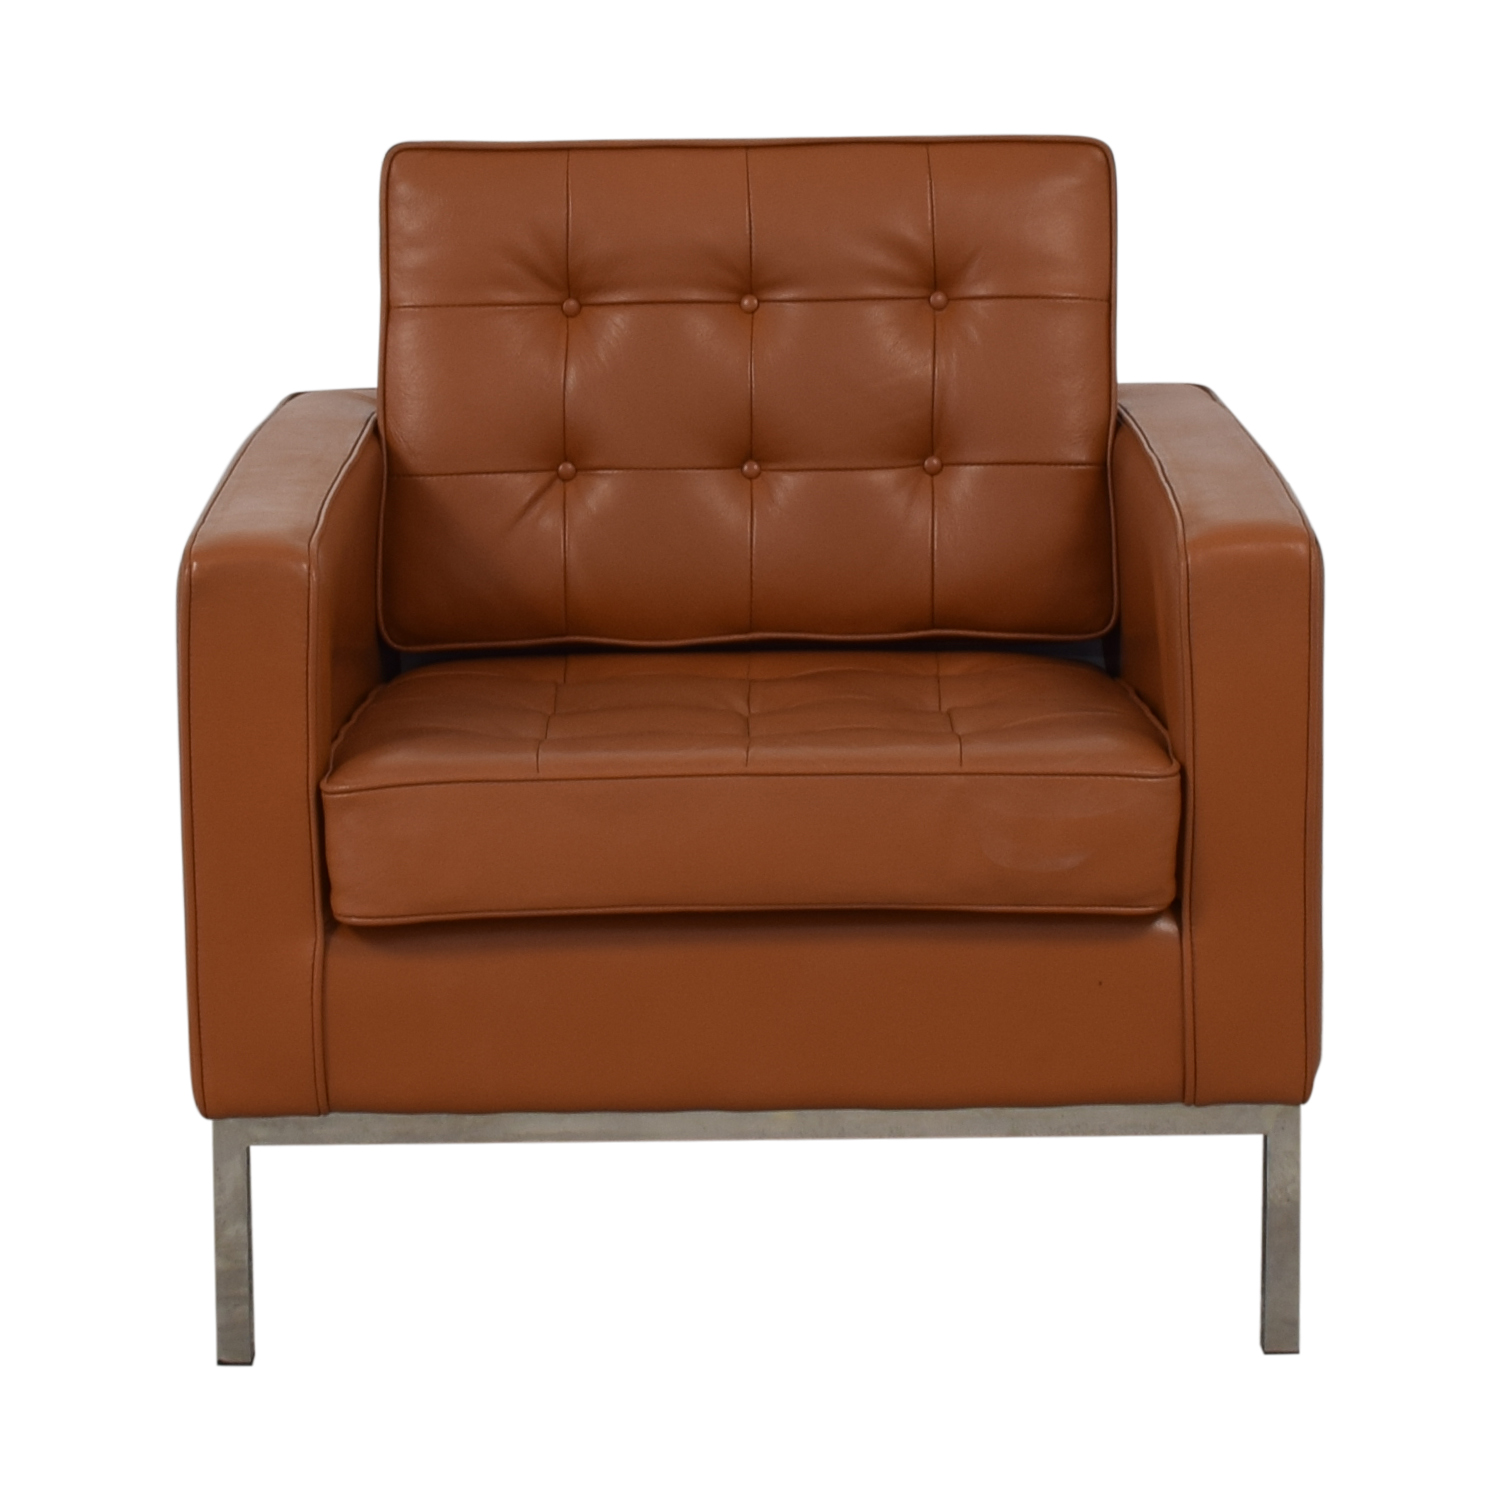 Kardiel Kardiel Brown Leather Chair Chairs